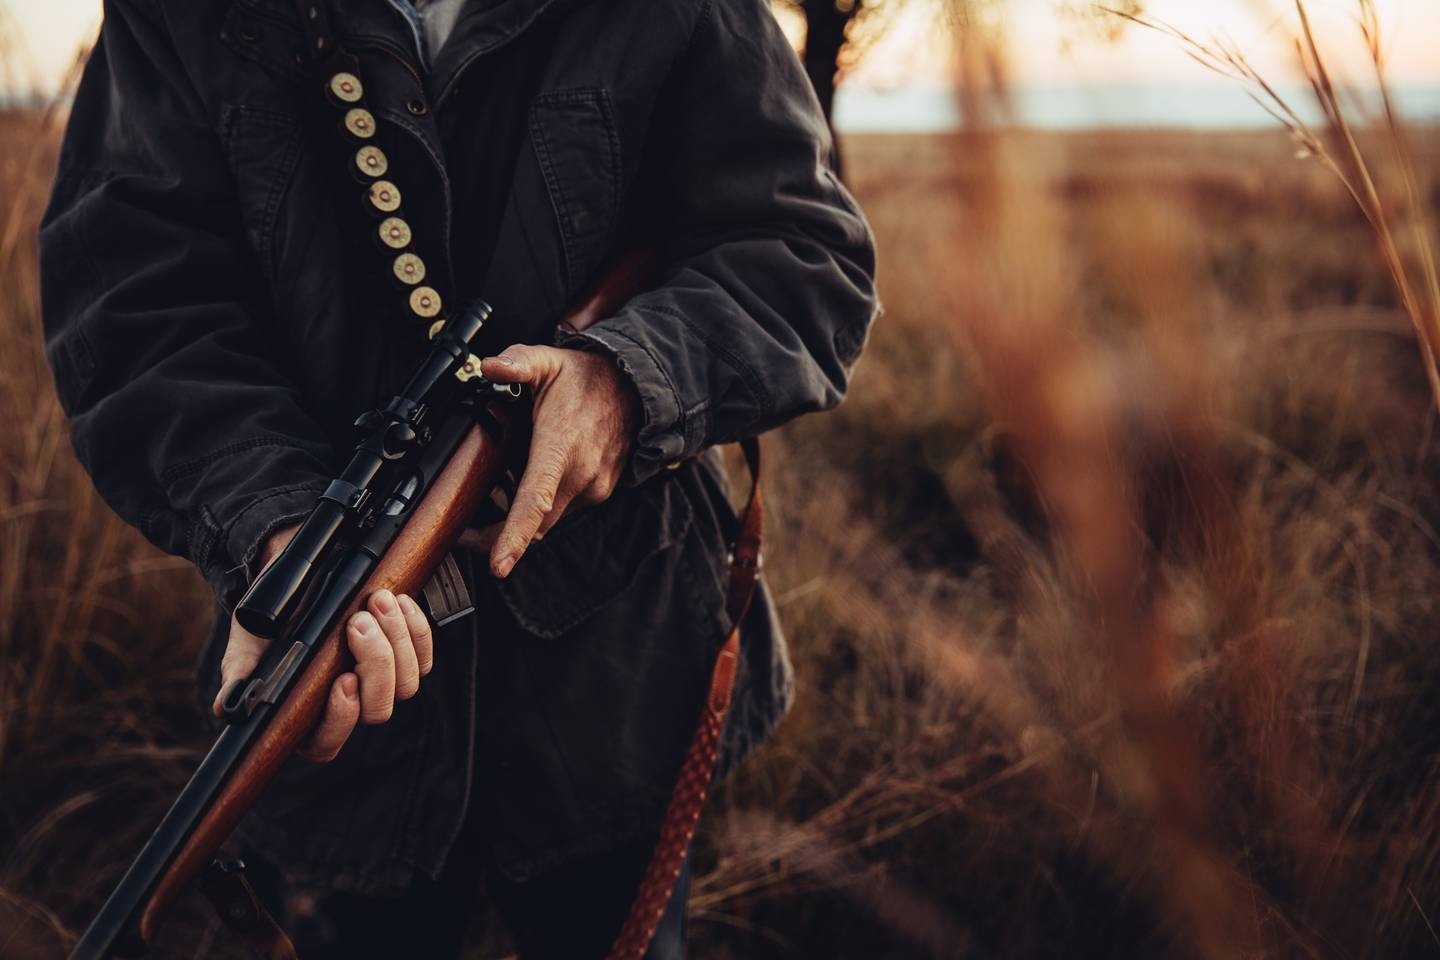 Man carrying sniper and cartridge in wilderness. Long dry grass is surrounding him.